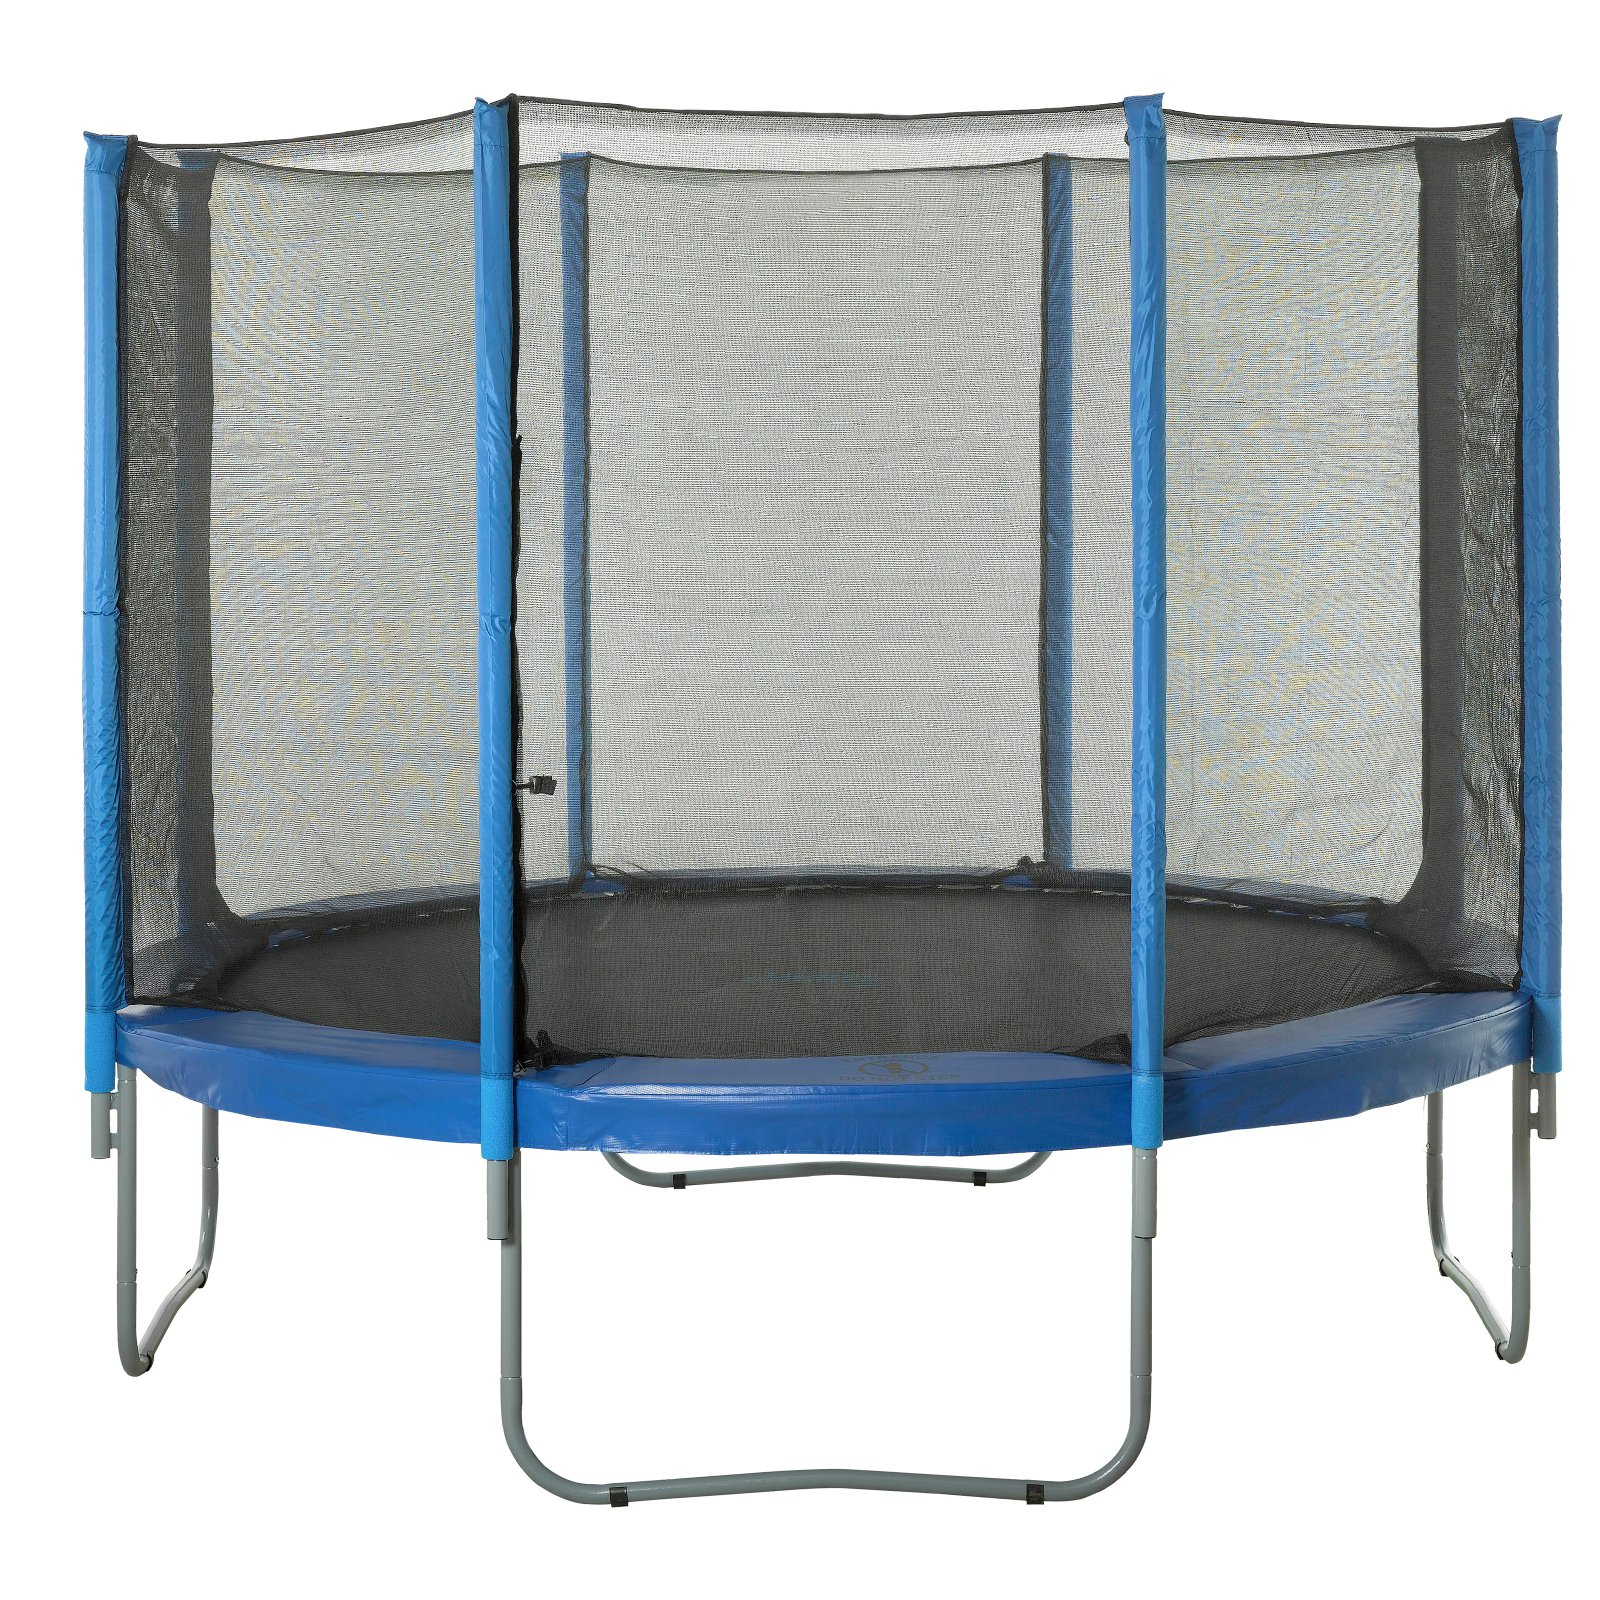 Upper Bounce Trampoline Enclosure Safety Net for Round Frames